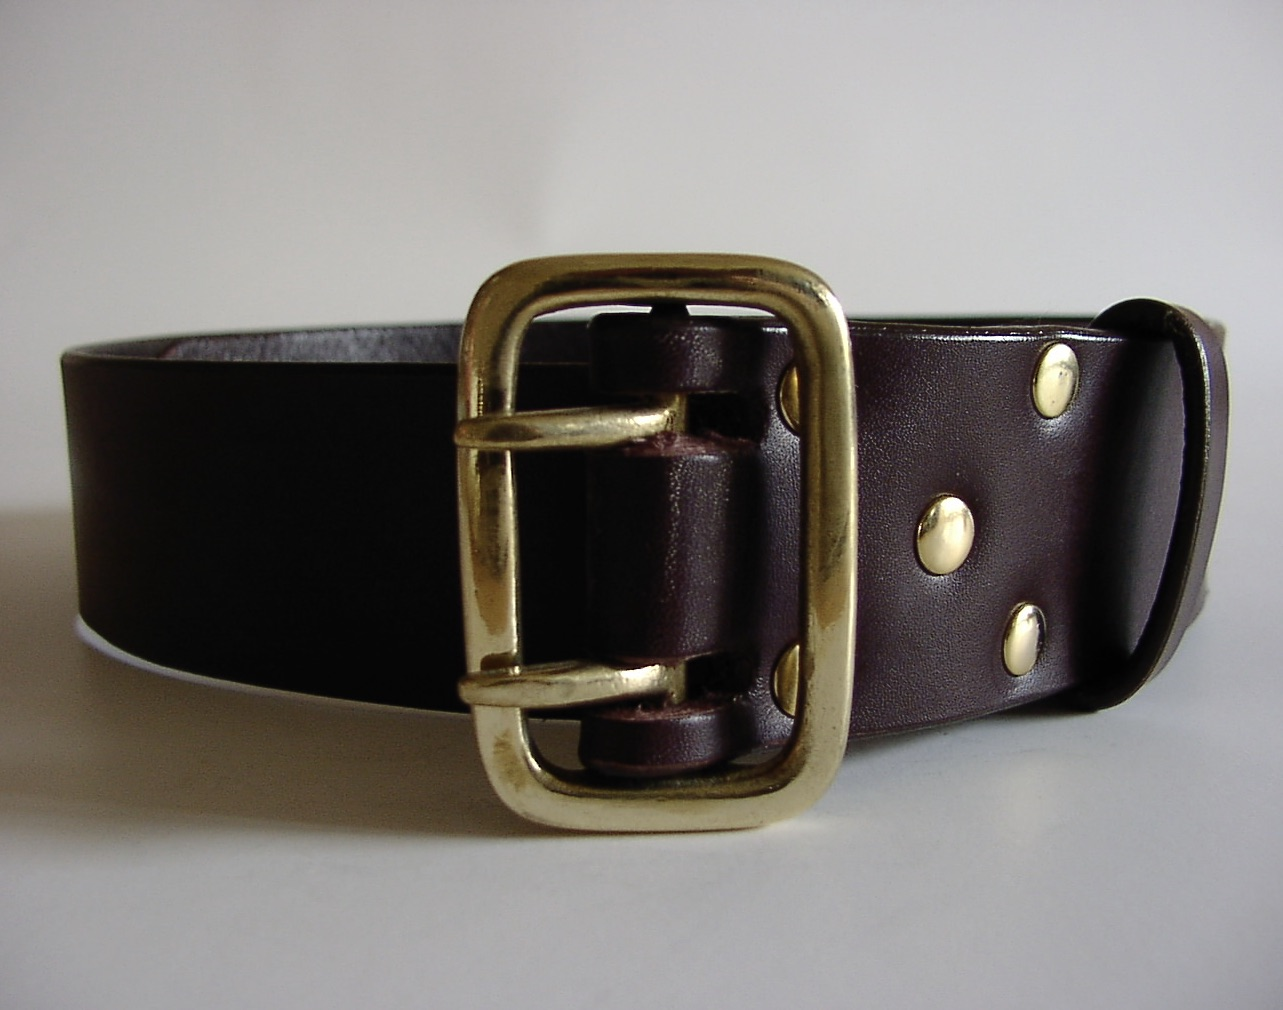 FORTH double-prong-leather-belt-buckle-military-style-1-62-inches-wide/